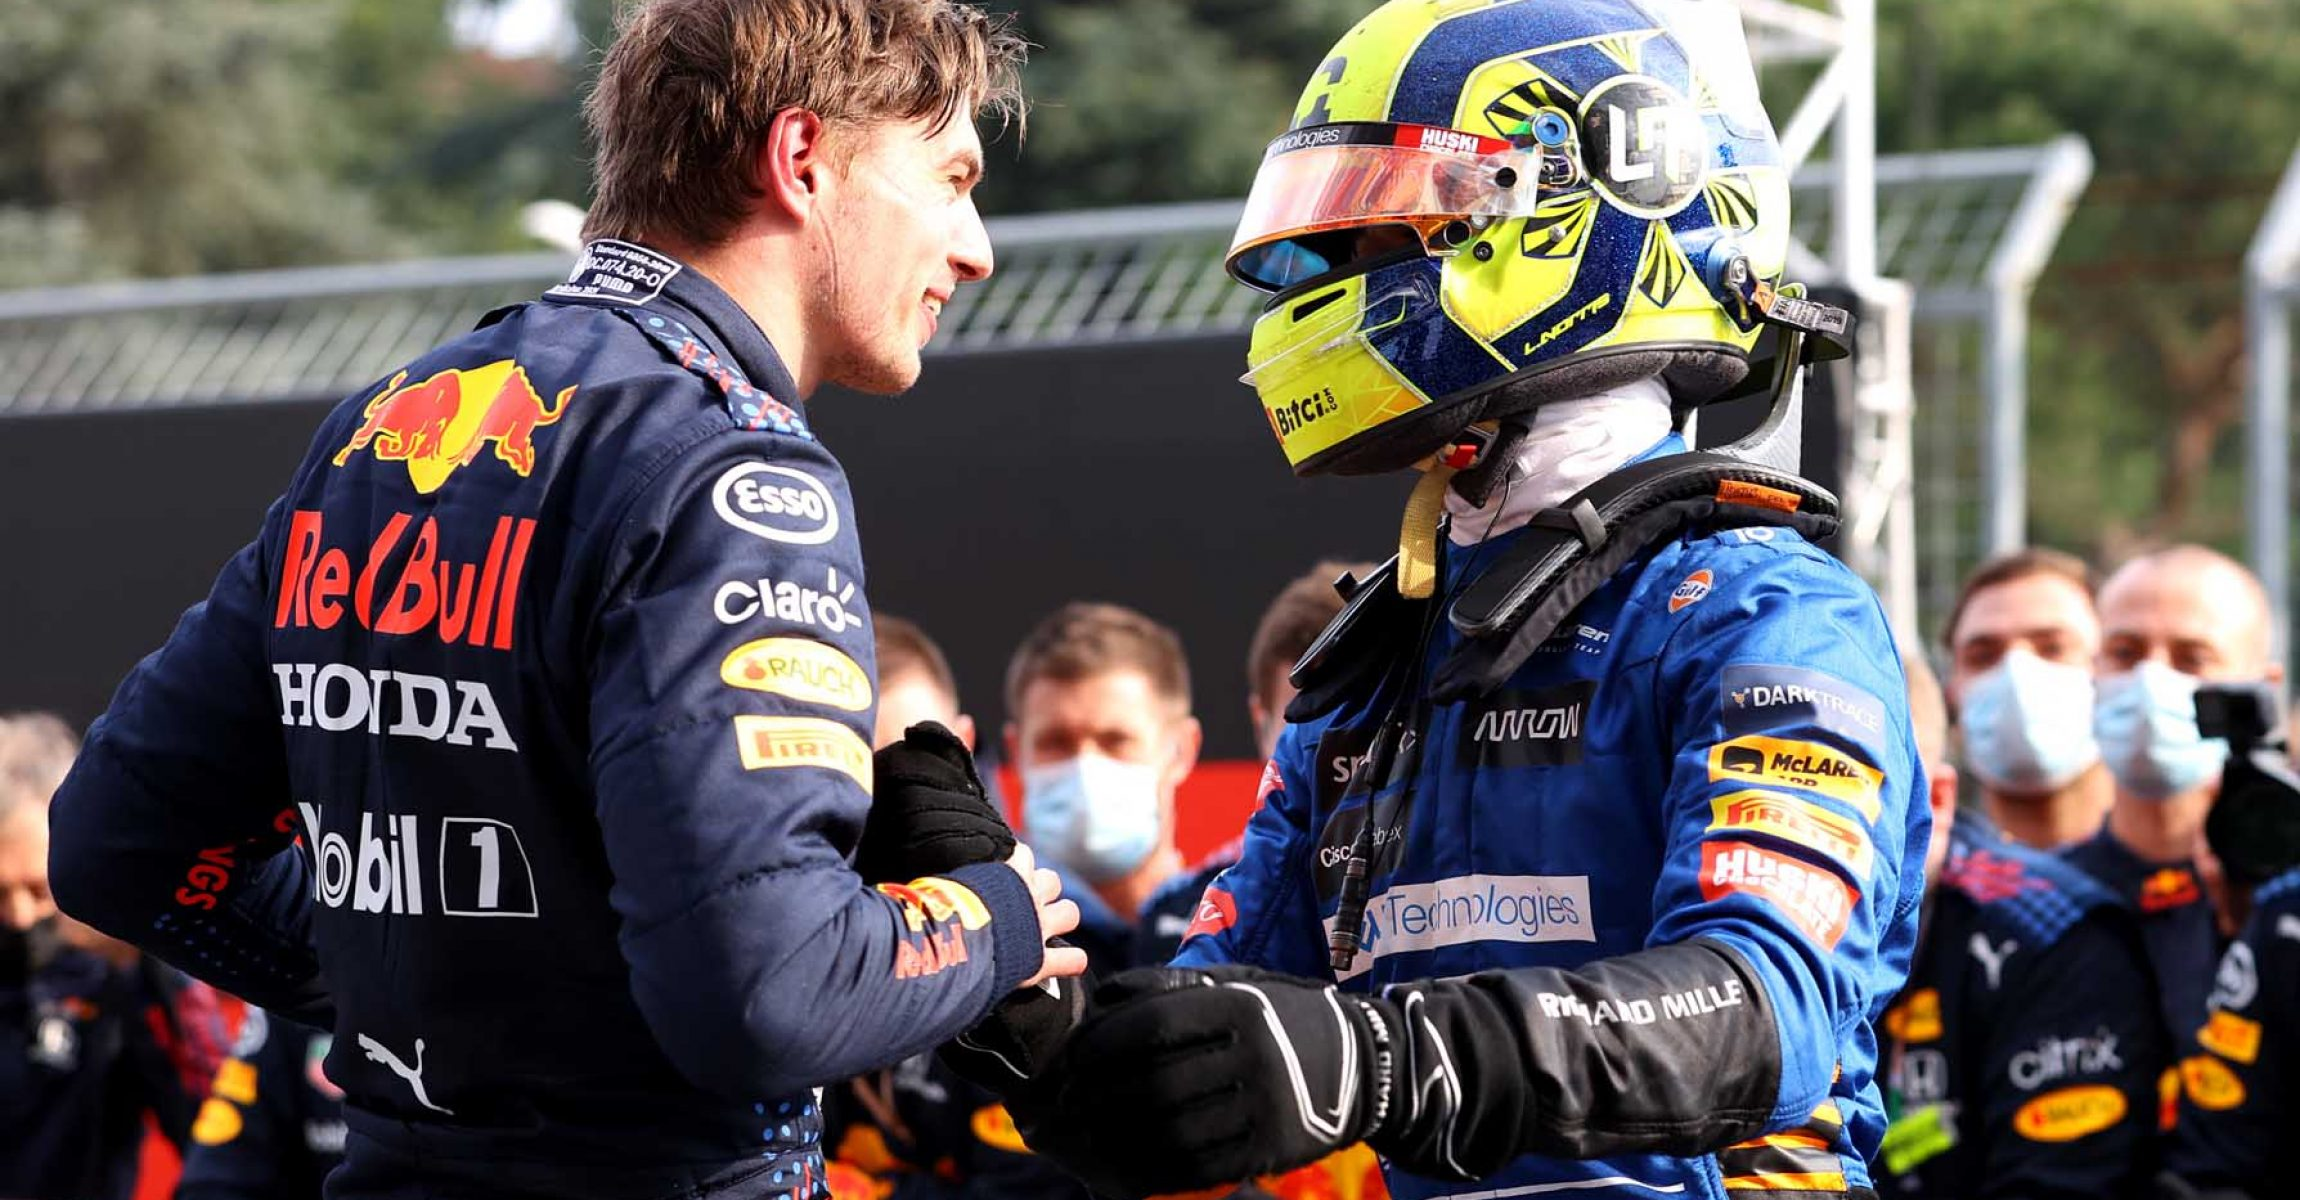 IMOLA, ITALY - APRIL 18: Race winner Max Verstappen of Netherlands and Red Bull Racing and third placed Lando Norris of Great Britain and McLaren F1 celebrate in parc ferme during the F1 Grand Prix of Emilia Romagna at Autodromo Enzo e Dino Ferrari on April 18, 2021 in Imola, Italy. (Photo by Bryn Lennon/Getty Images)